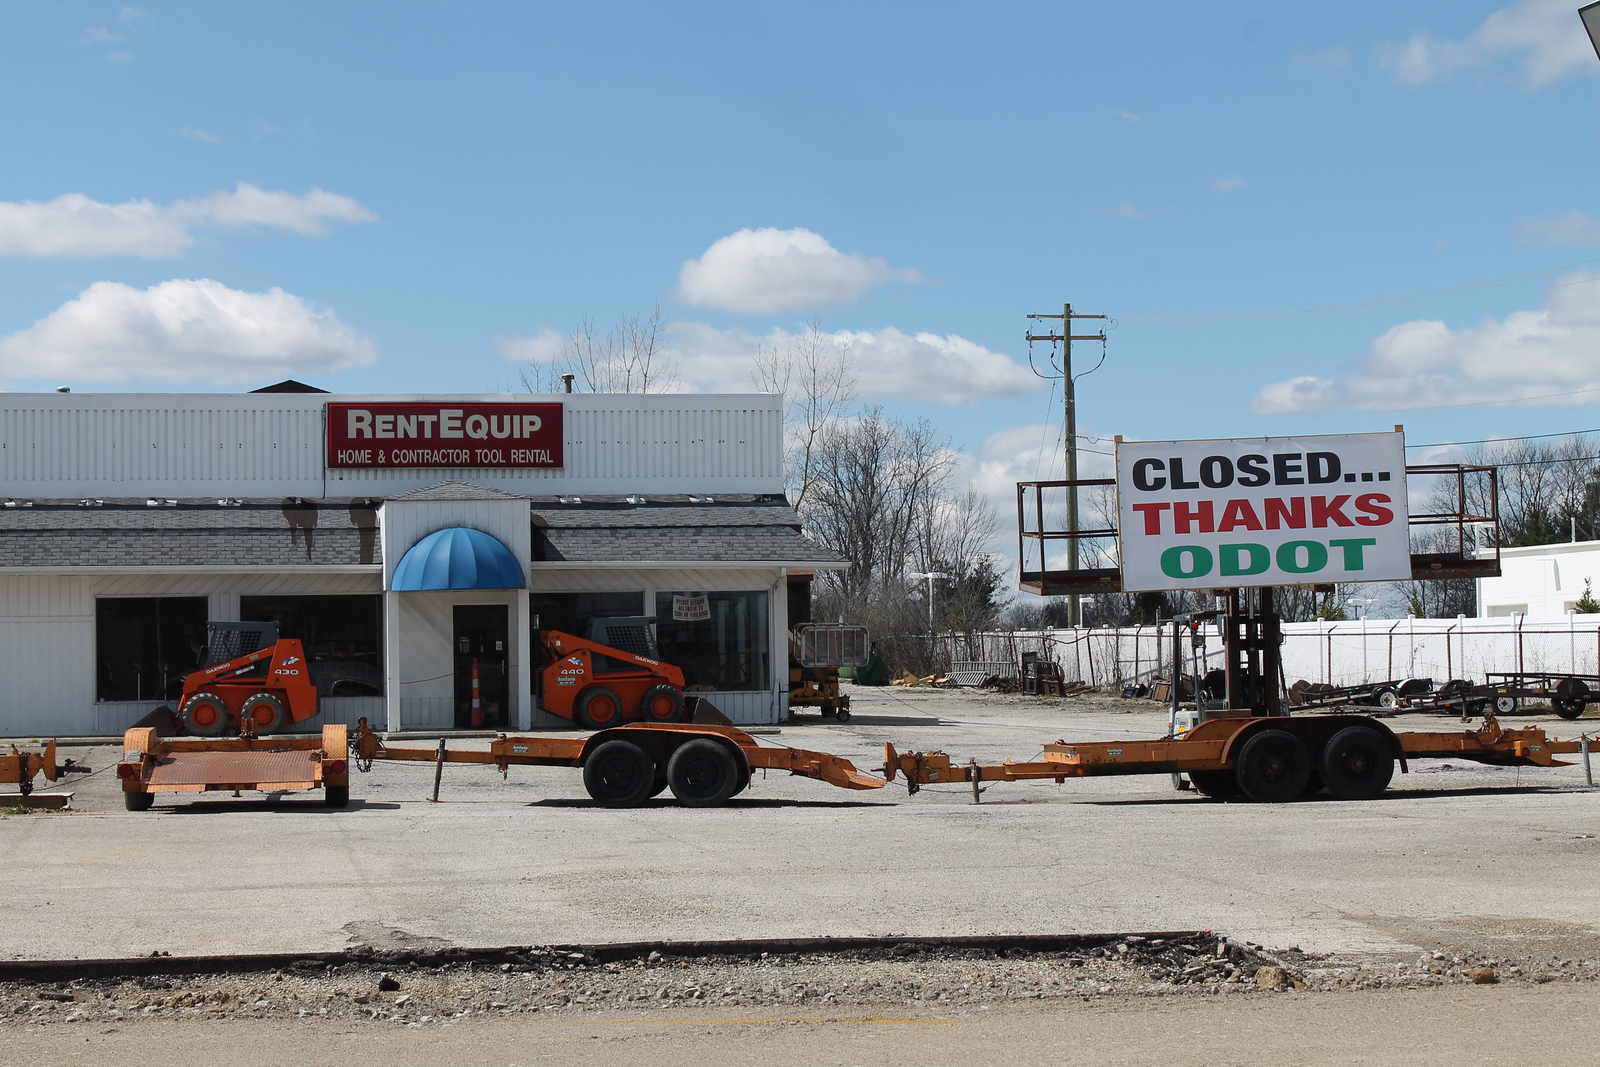 LAWRENCE PANTAGES / GAZETTE A business called RentEquip at 3900 Pearl Road posted a sign in its parking lot showing unhappiness with Ohio Department of Transportation construction work at its front entrance.